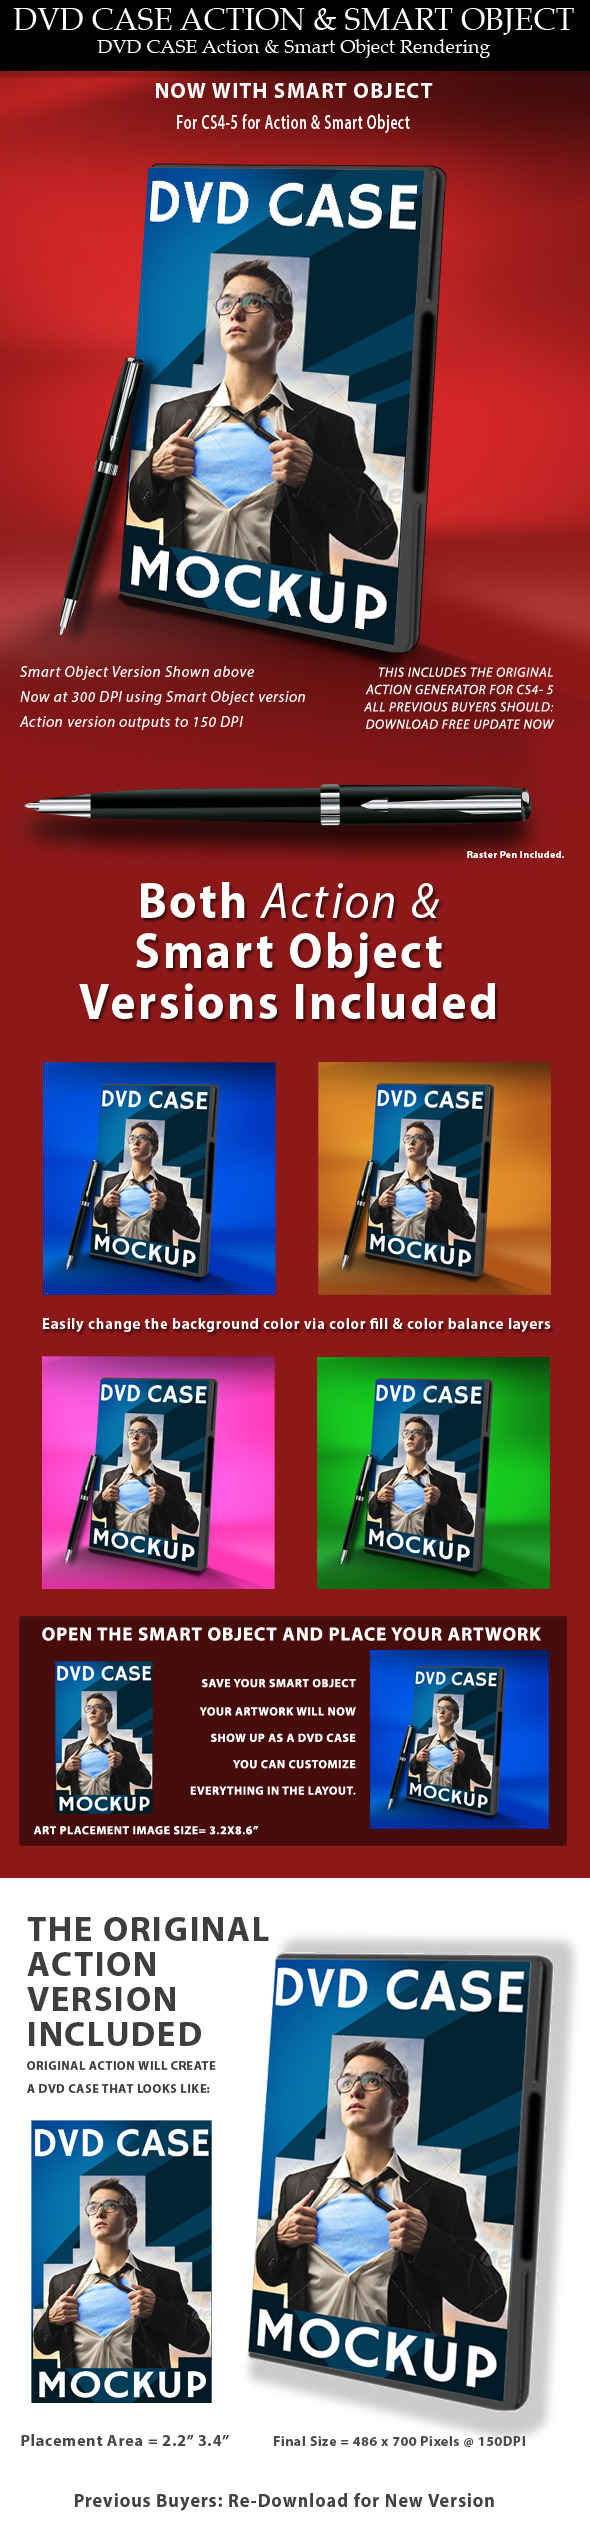 DVD Case Action & Smart Object - Utilities Actions